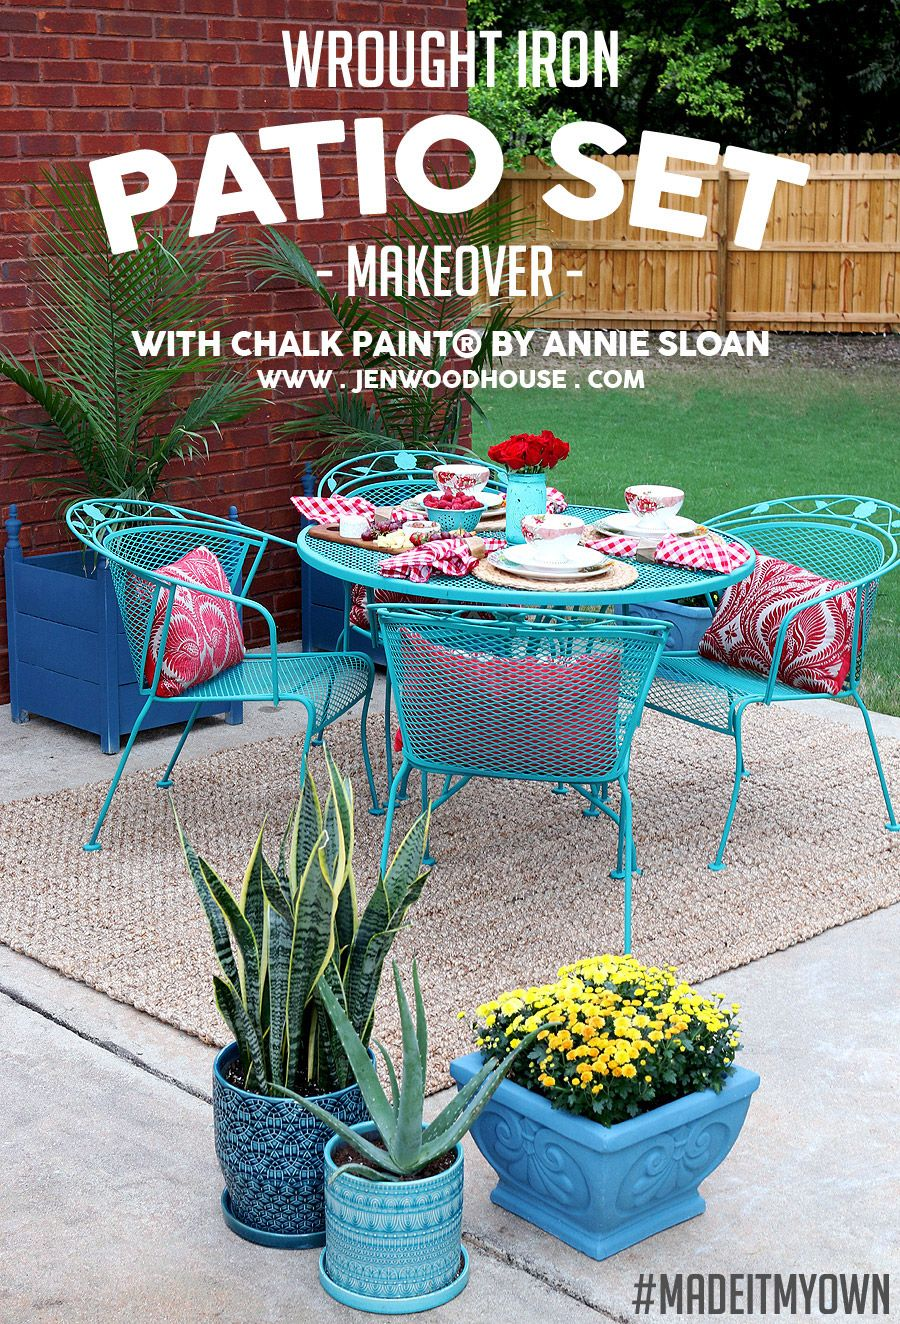 How To Paint Wrought Iron Patio Furniture With Chalk Paint By